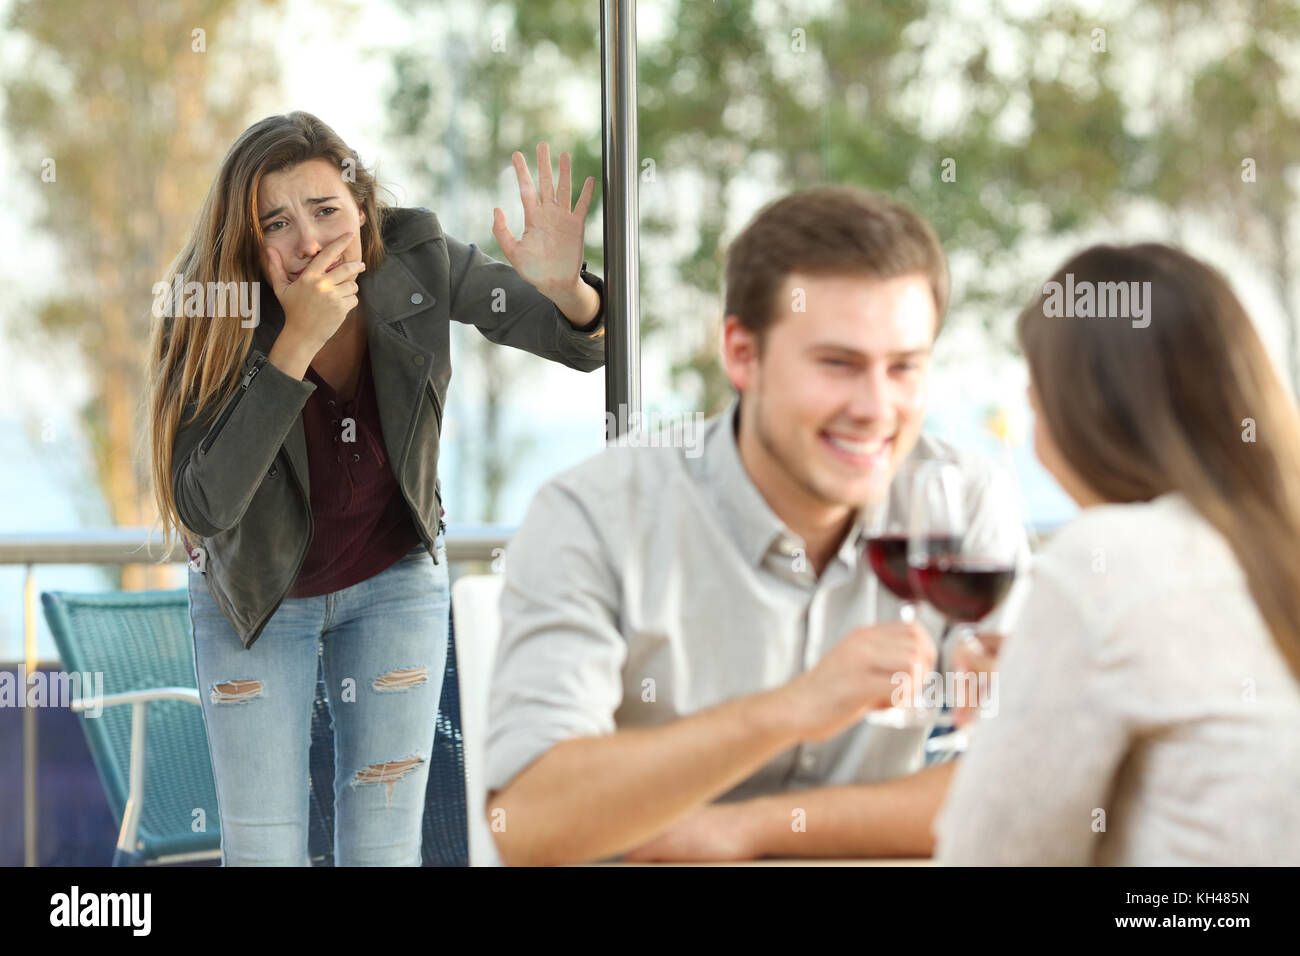 Cheater caught by his sad girlfriend dating with another girl in a coffee shop - Stock Image